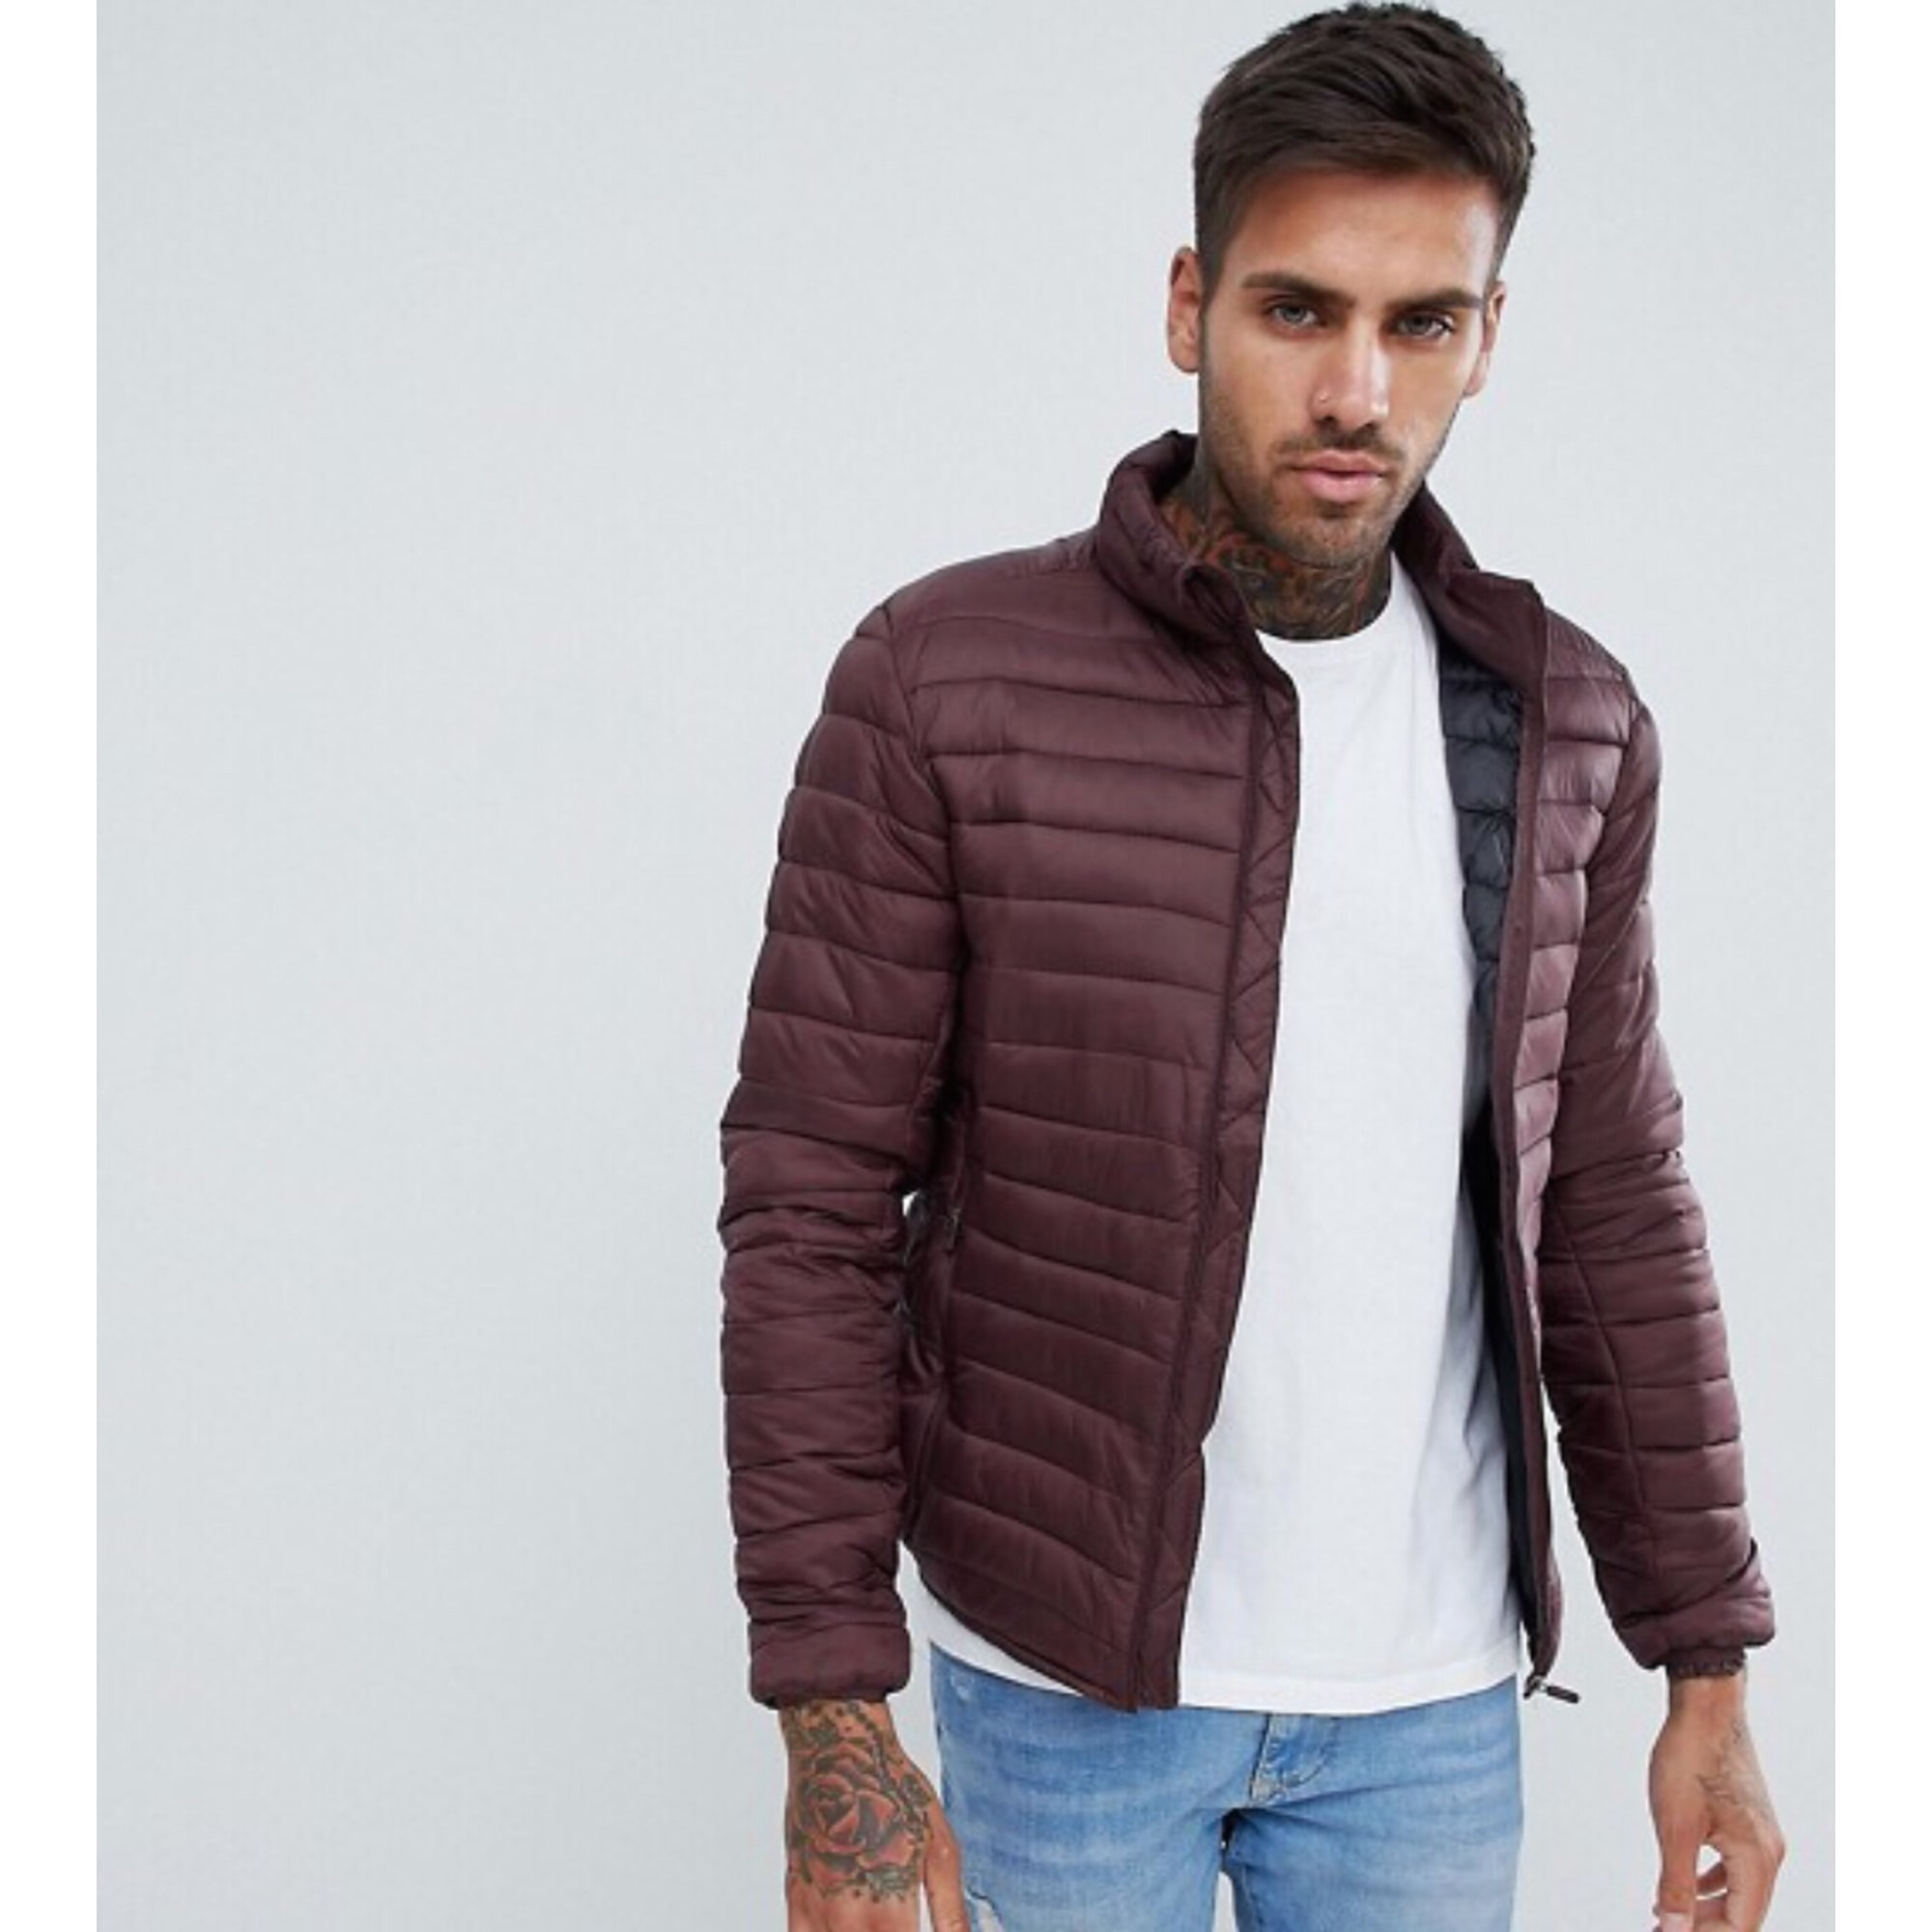 doudoune pull and bear homme